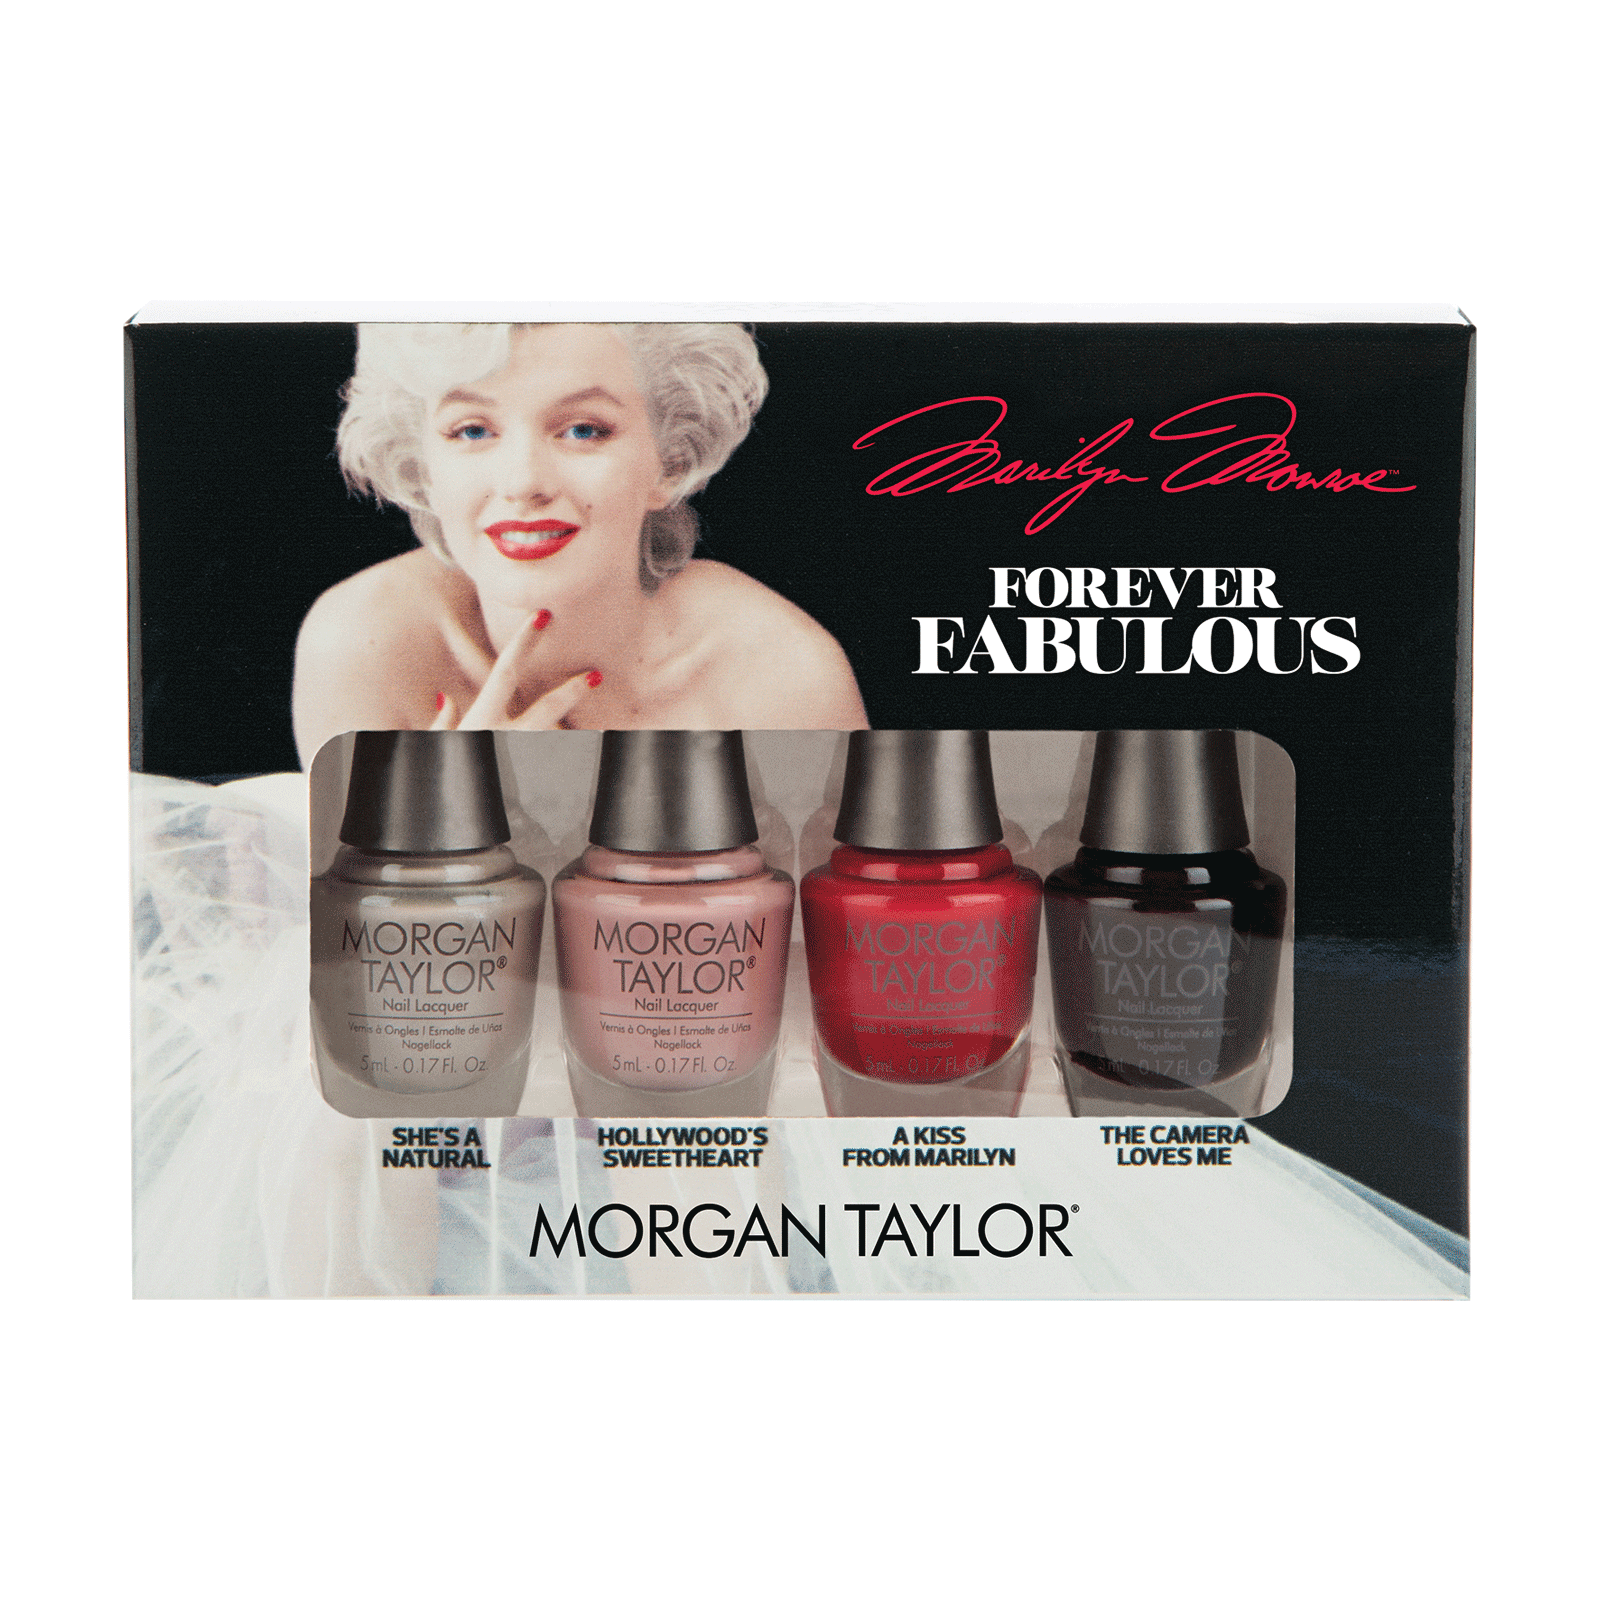 Forever Fabulous - 4 Count Classic Kit